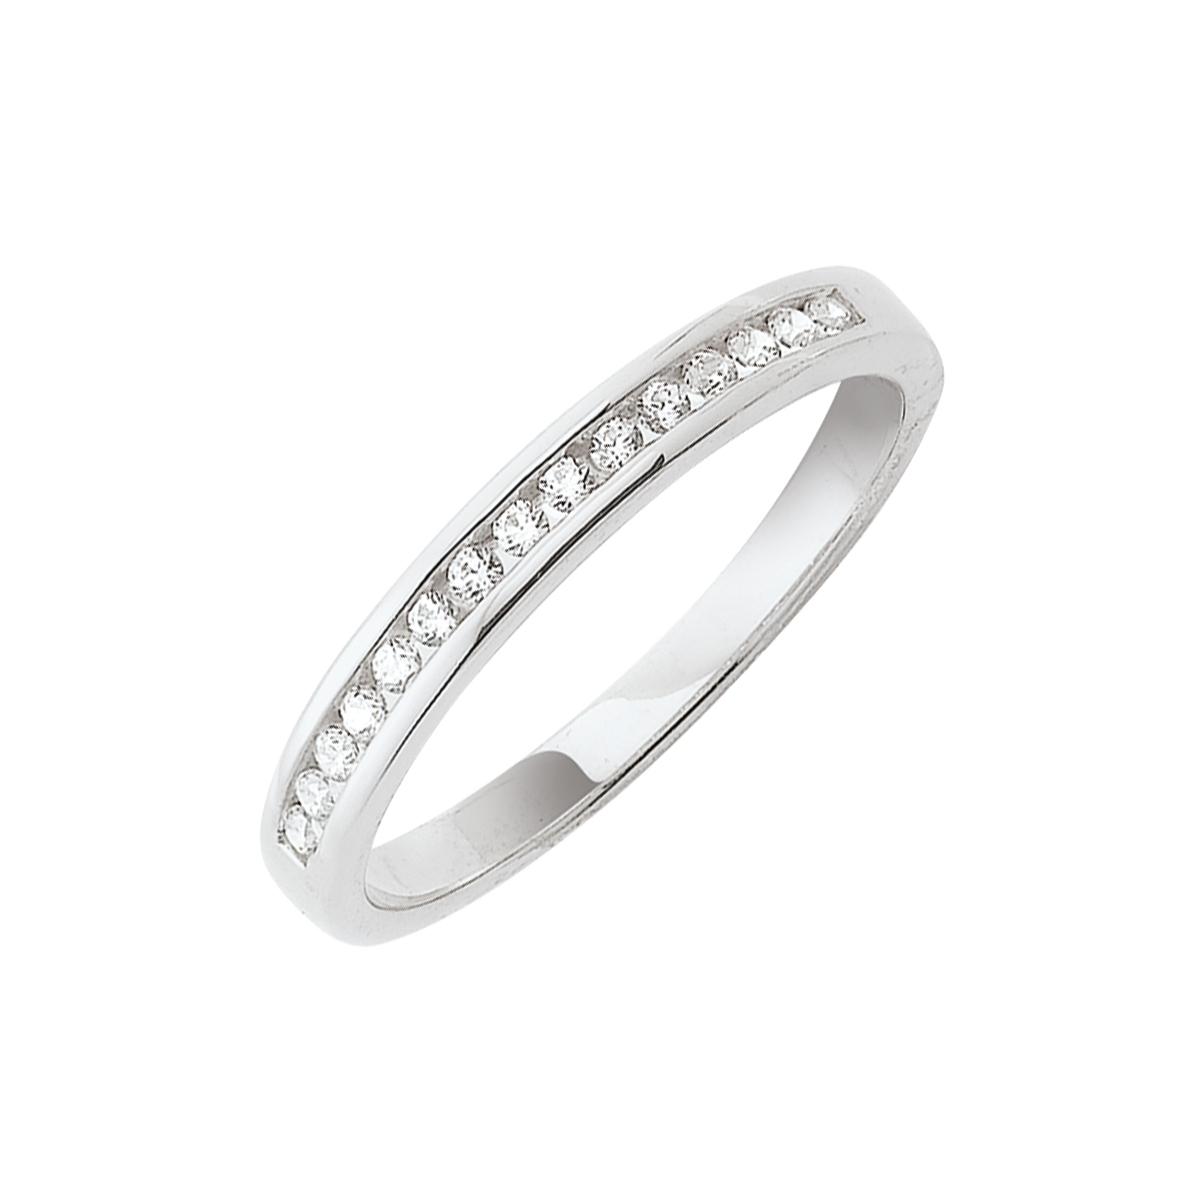 Alliance demi-tour serti rail or blanc - Diamants synthétiques 0,15 carat